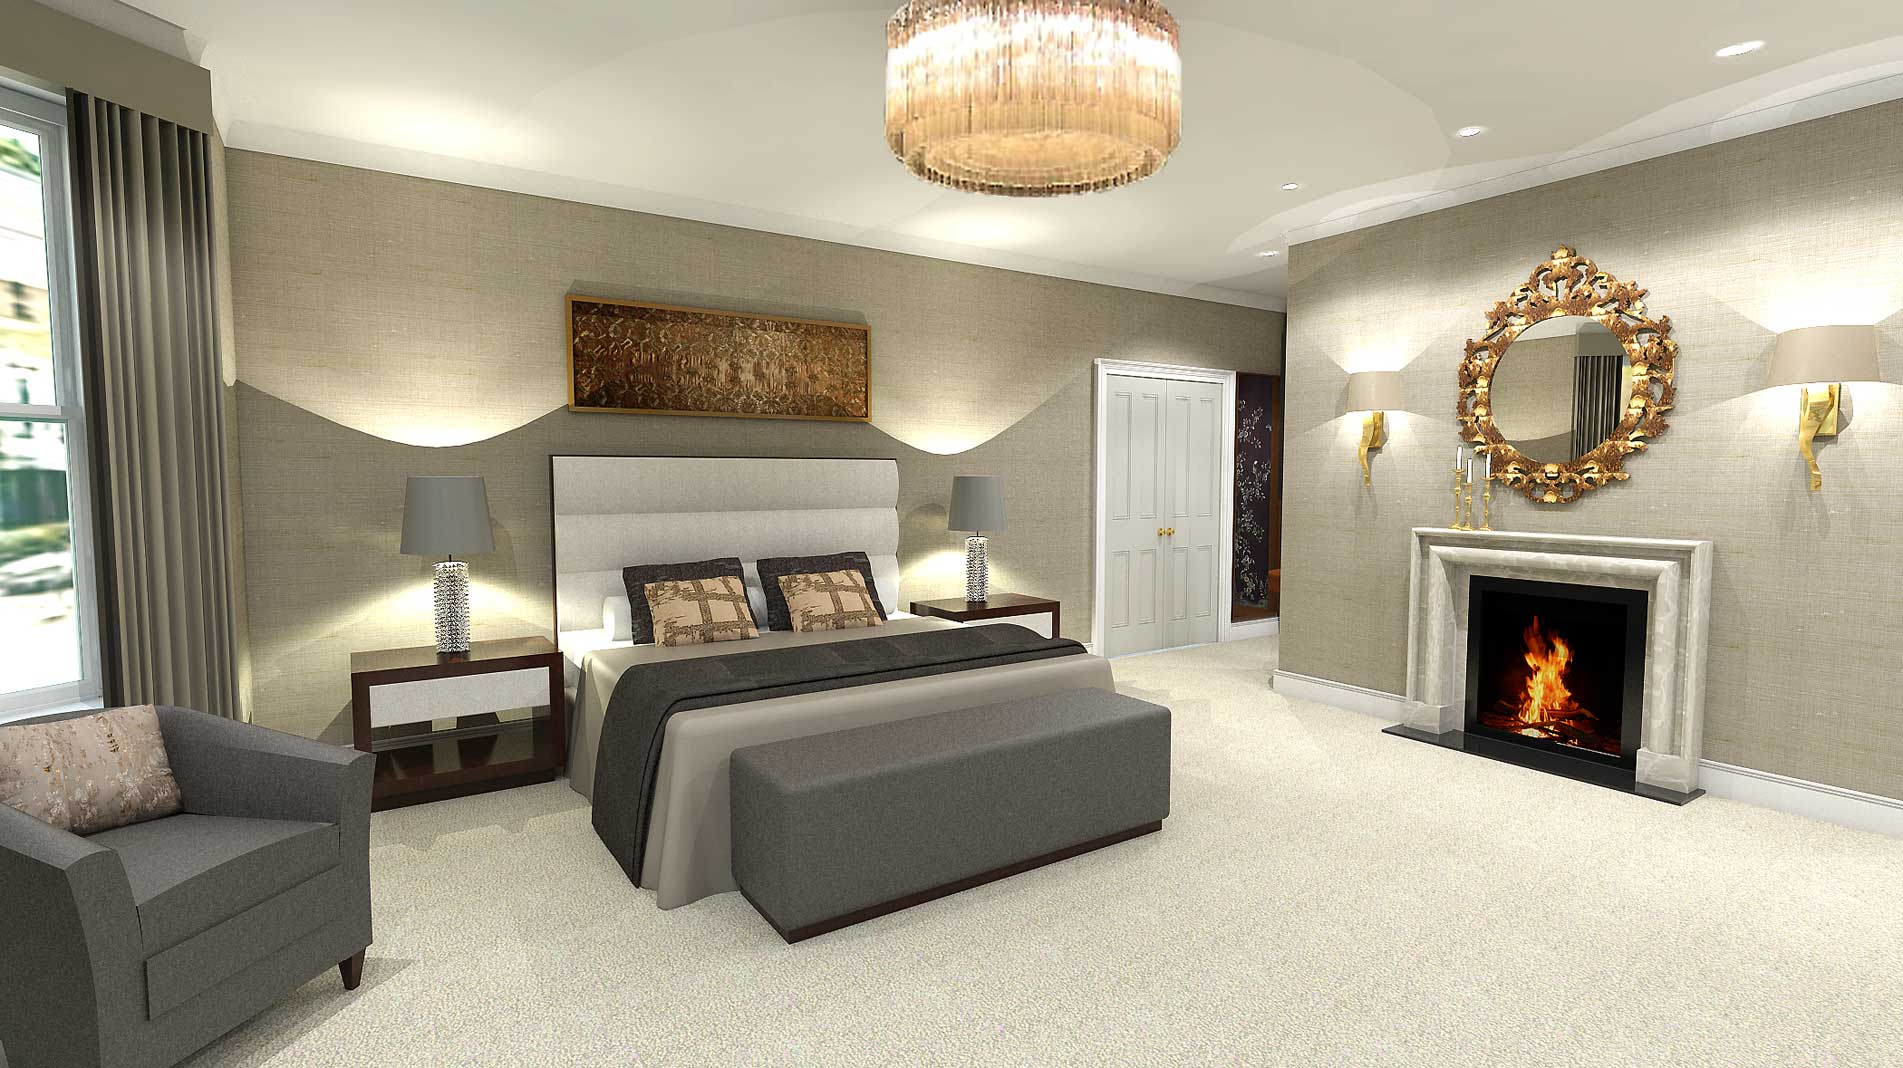 OLBC Interior Design Specialists